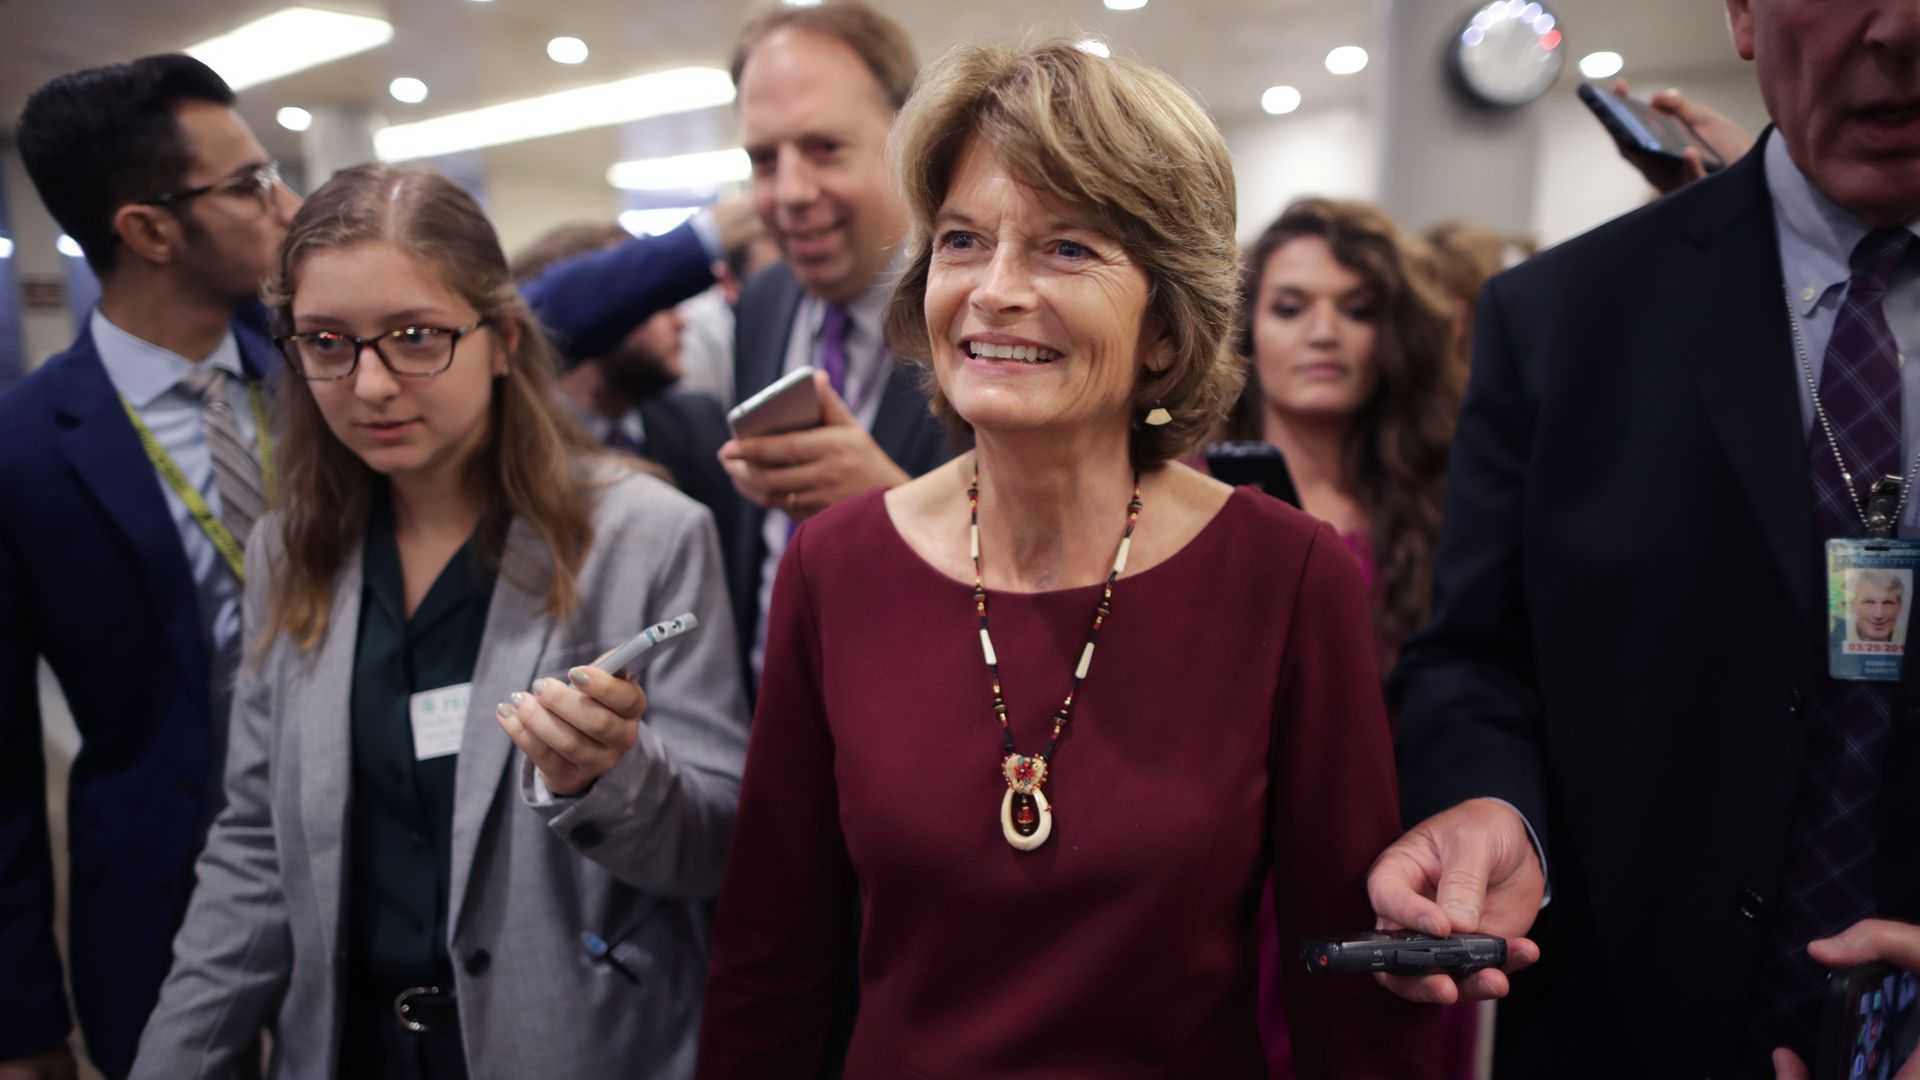 Lisa Murkowski smiling in the Capitol Hill basement surrounded by reporters.